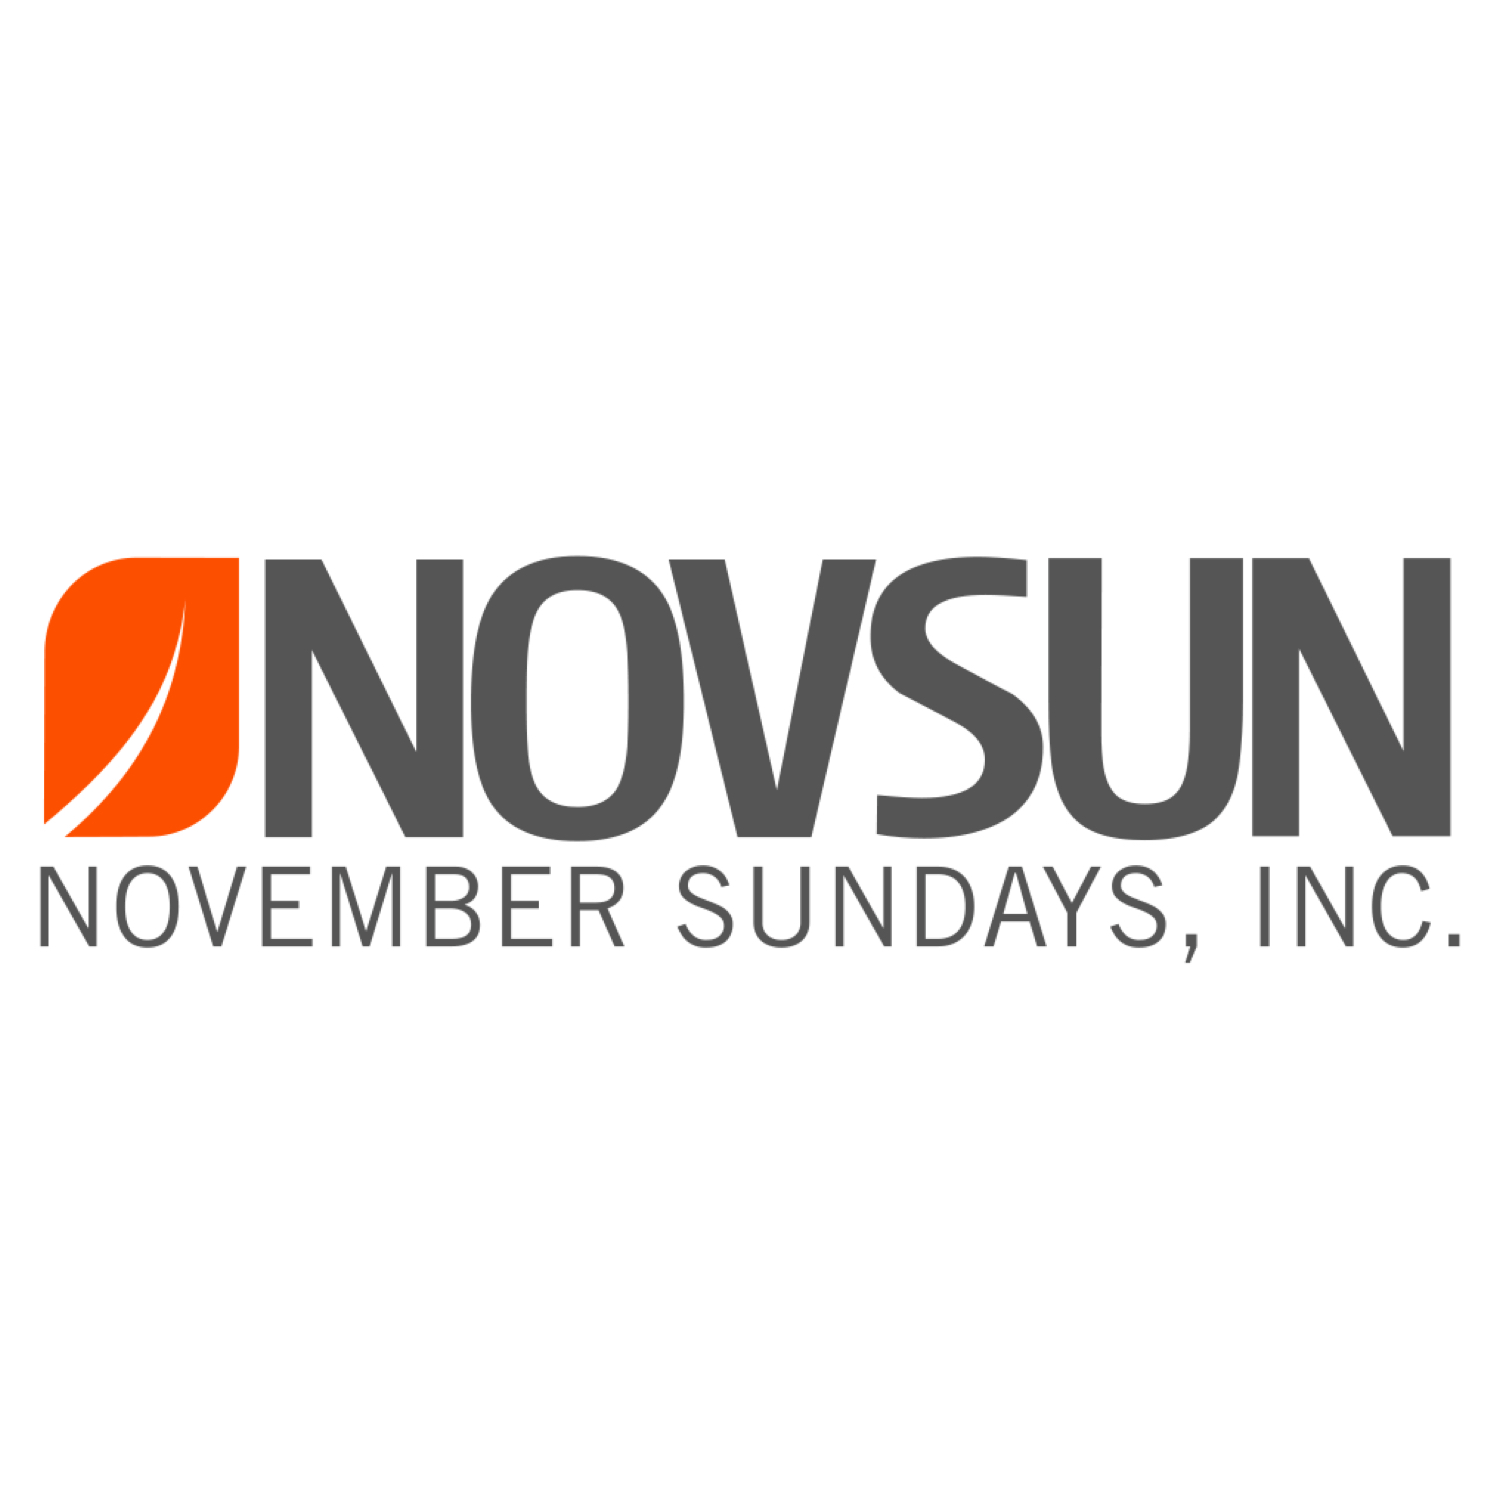 November Sundays   November Sundays is an inbound marketing agency. We help medium-sized businesses increase traffic, convert leads, and close deals online using content marketing, email marketing, social media, and paid online advertising, all within the HubSpot software platform. We also make some really cool animated explainer videos.